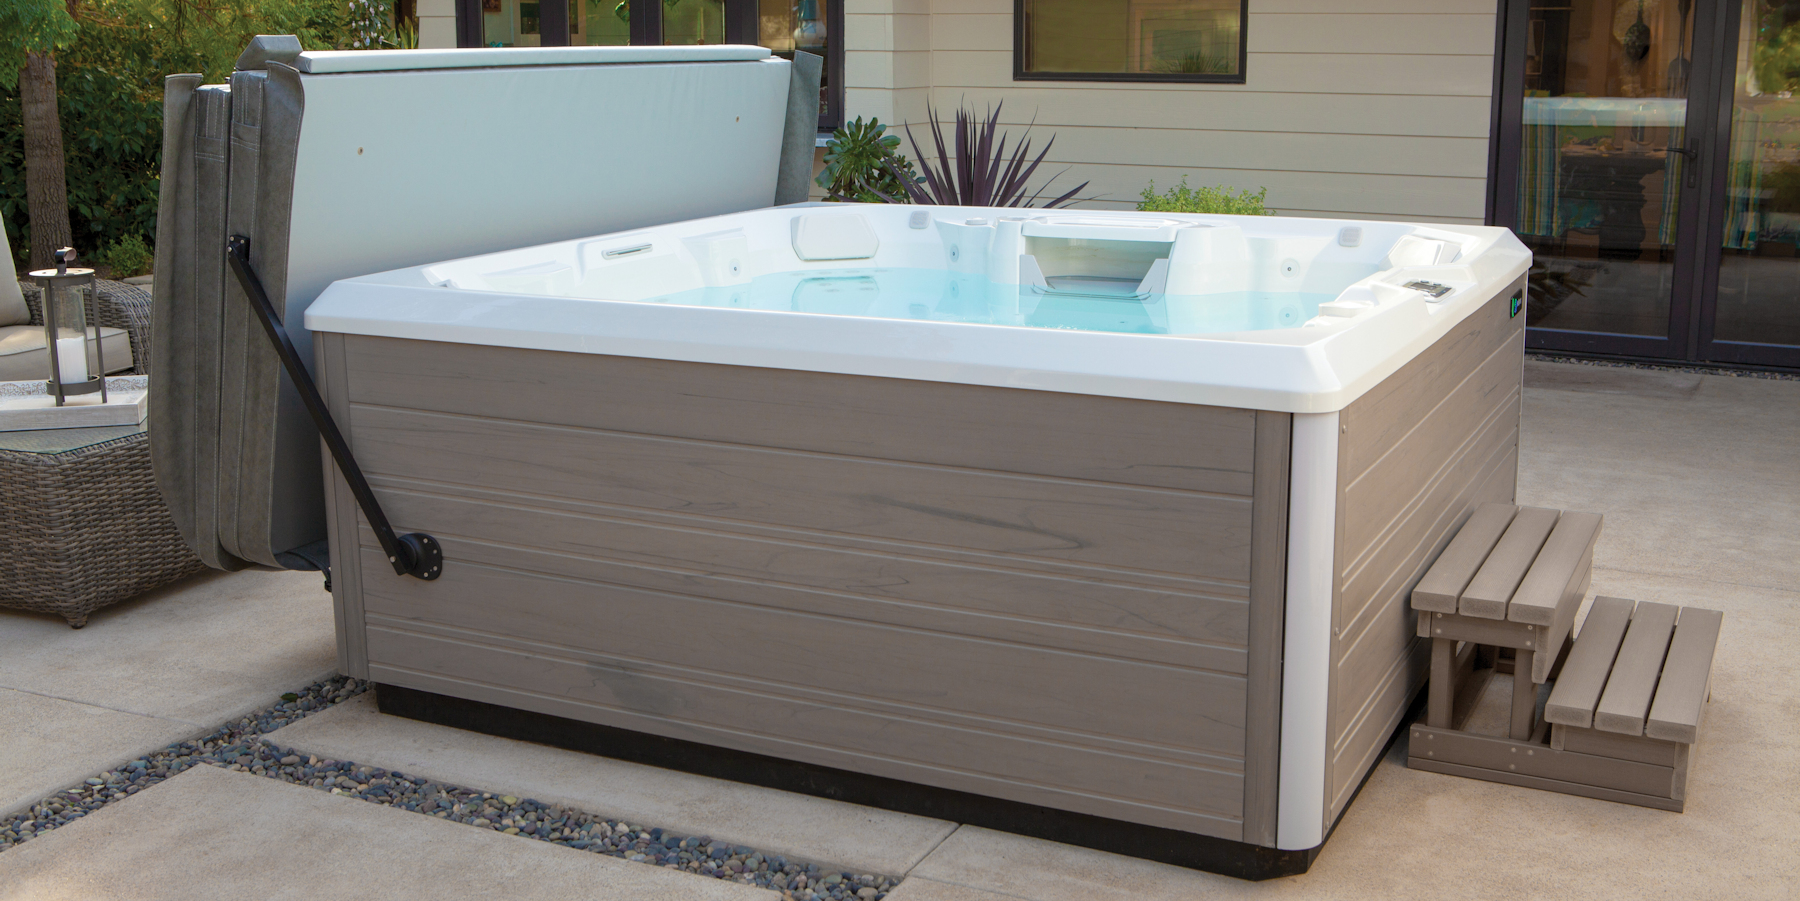 Get Your Hot Tub Ready for Fall